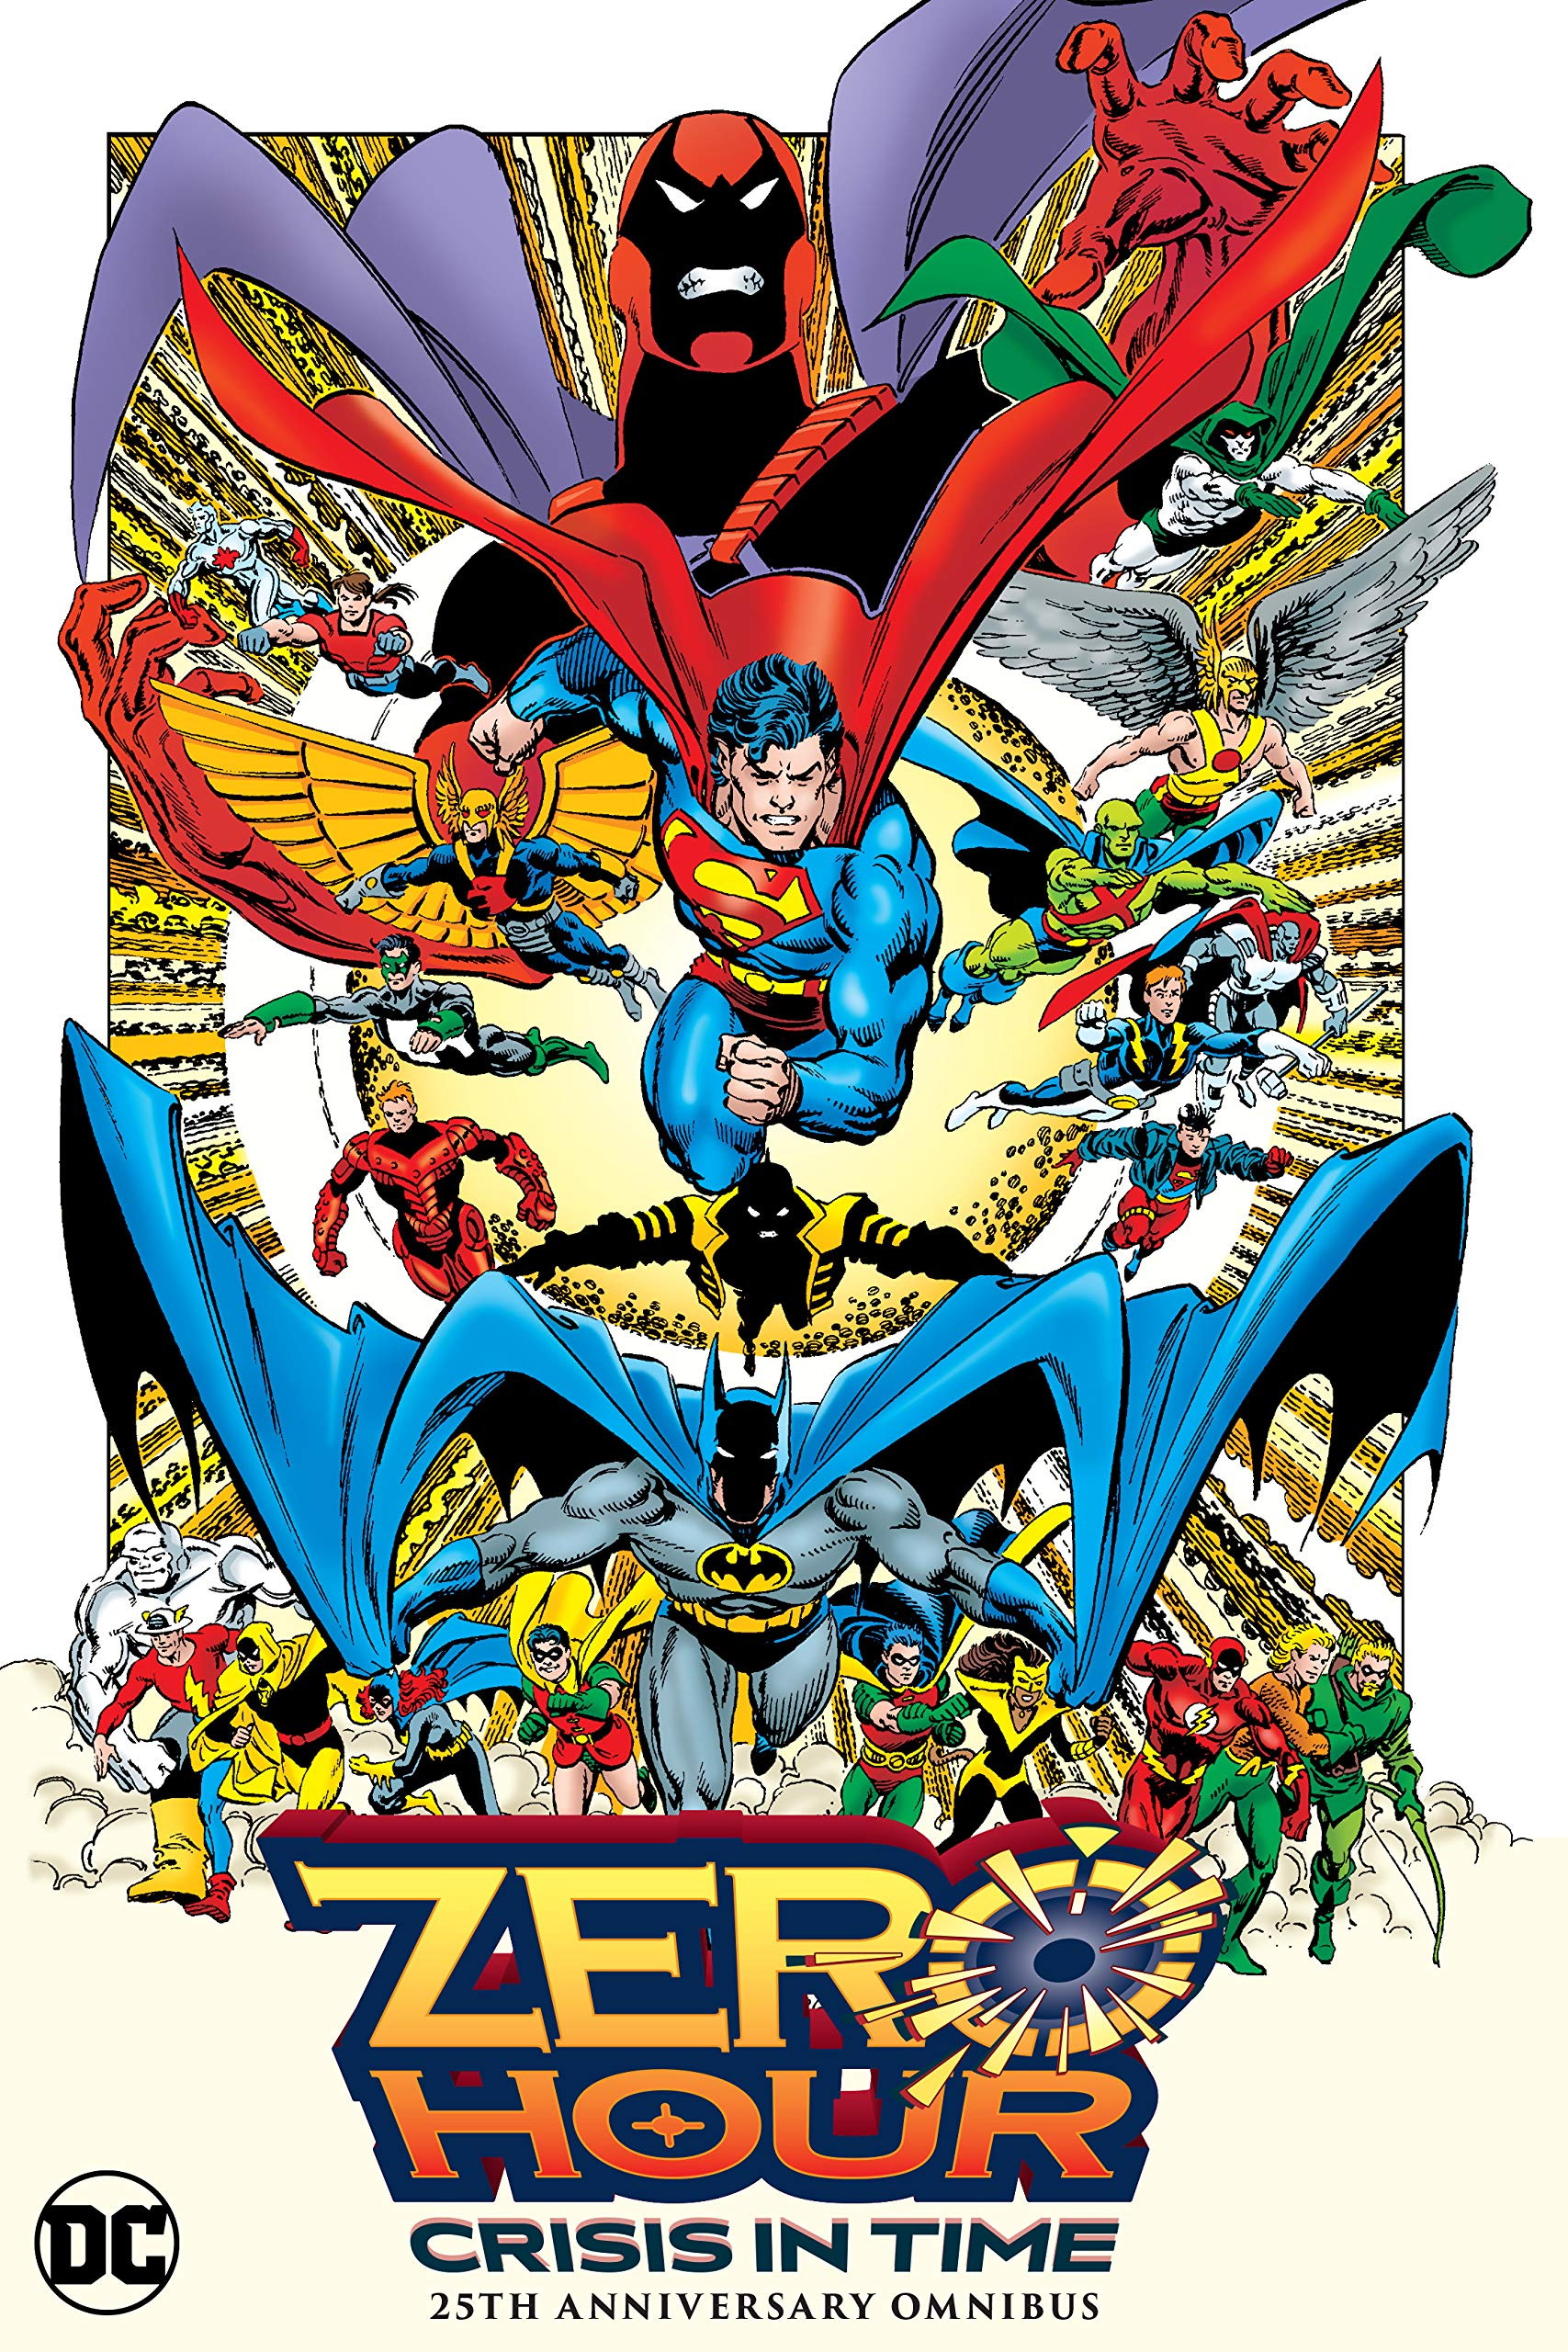 Zero Hour: Crisis in Time 25th Anniversary Omnibus by DC Comics